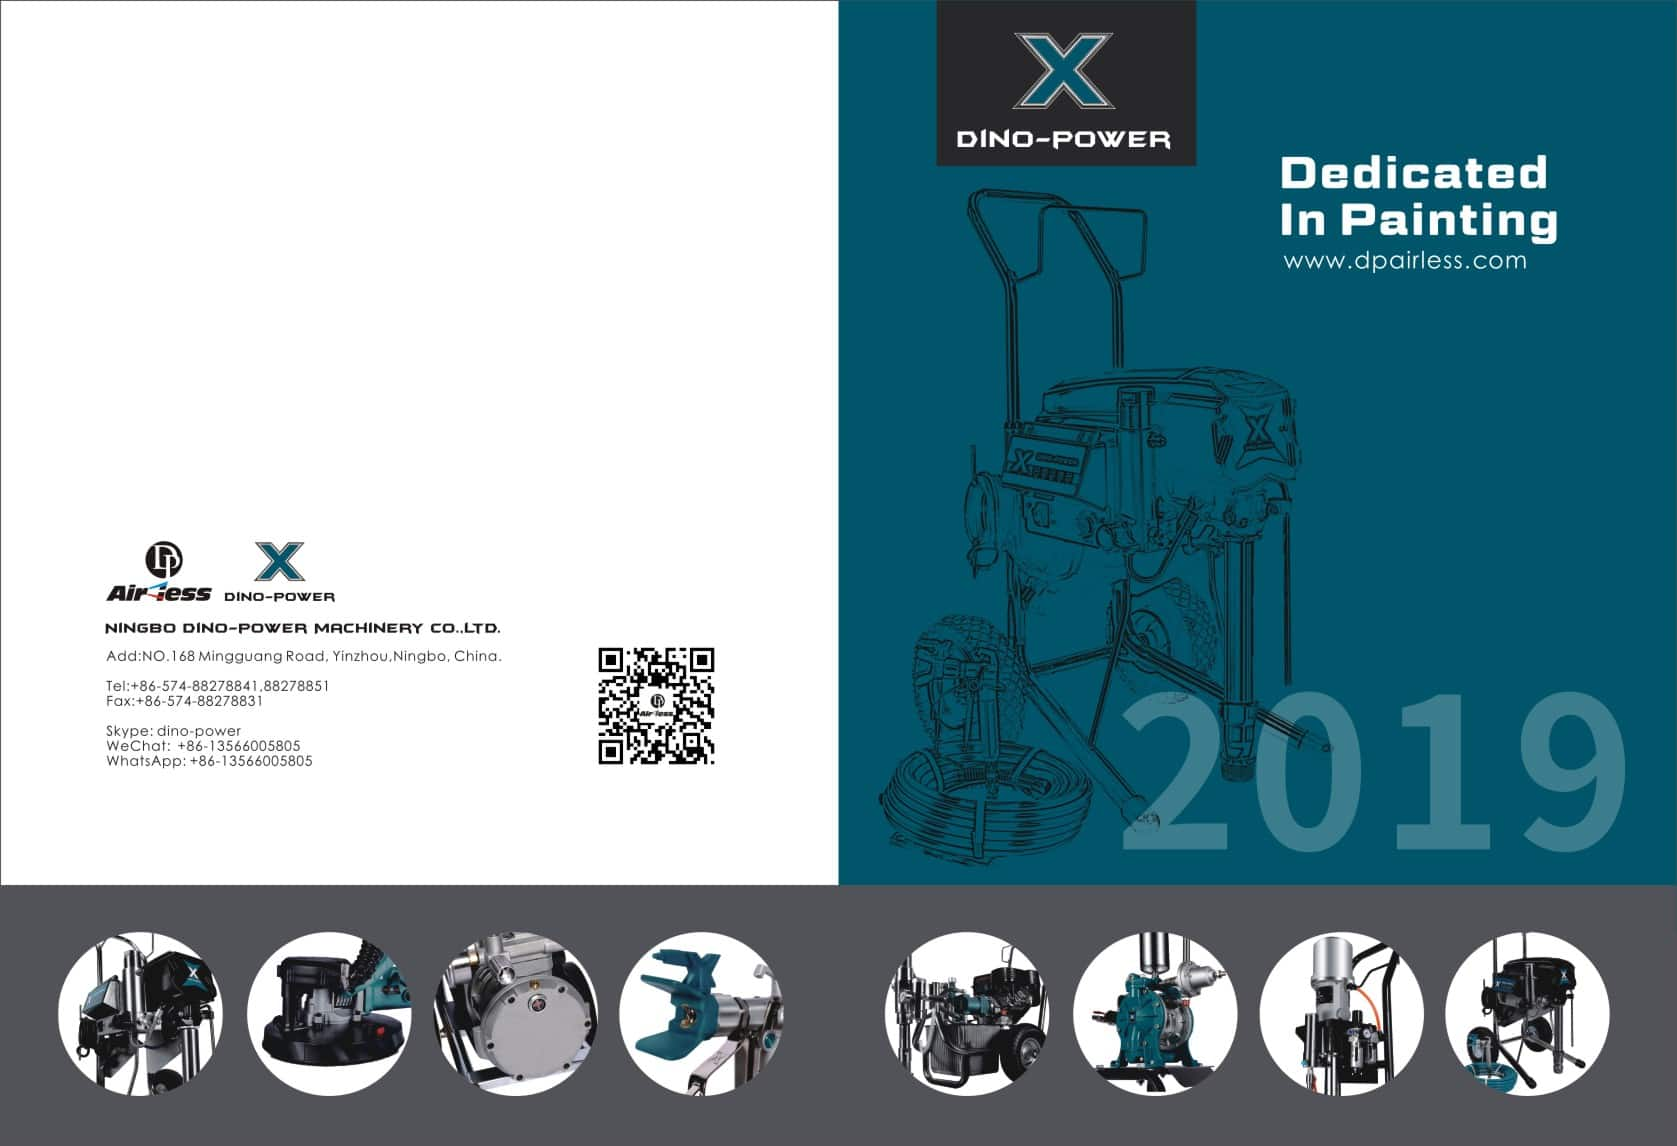 DP AIRLESS PAINT SPRAYER Front page